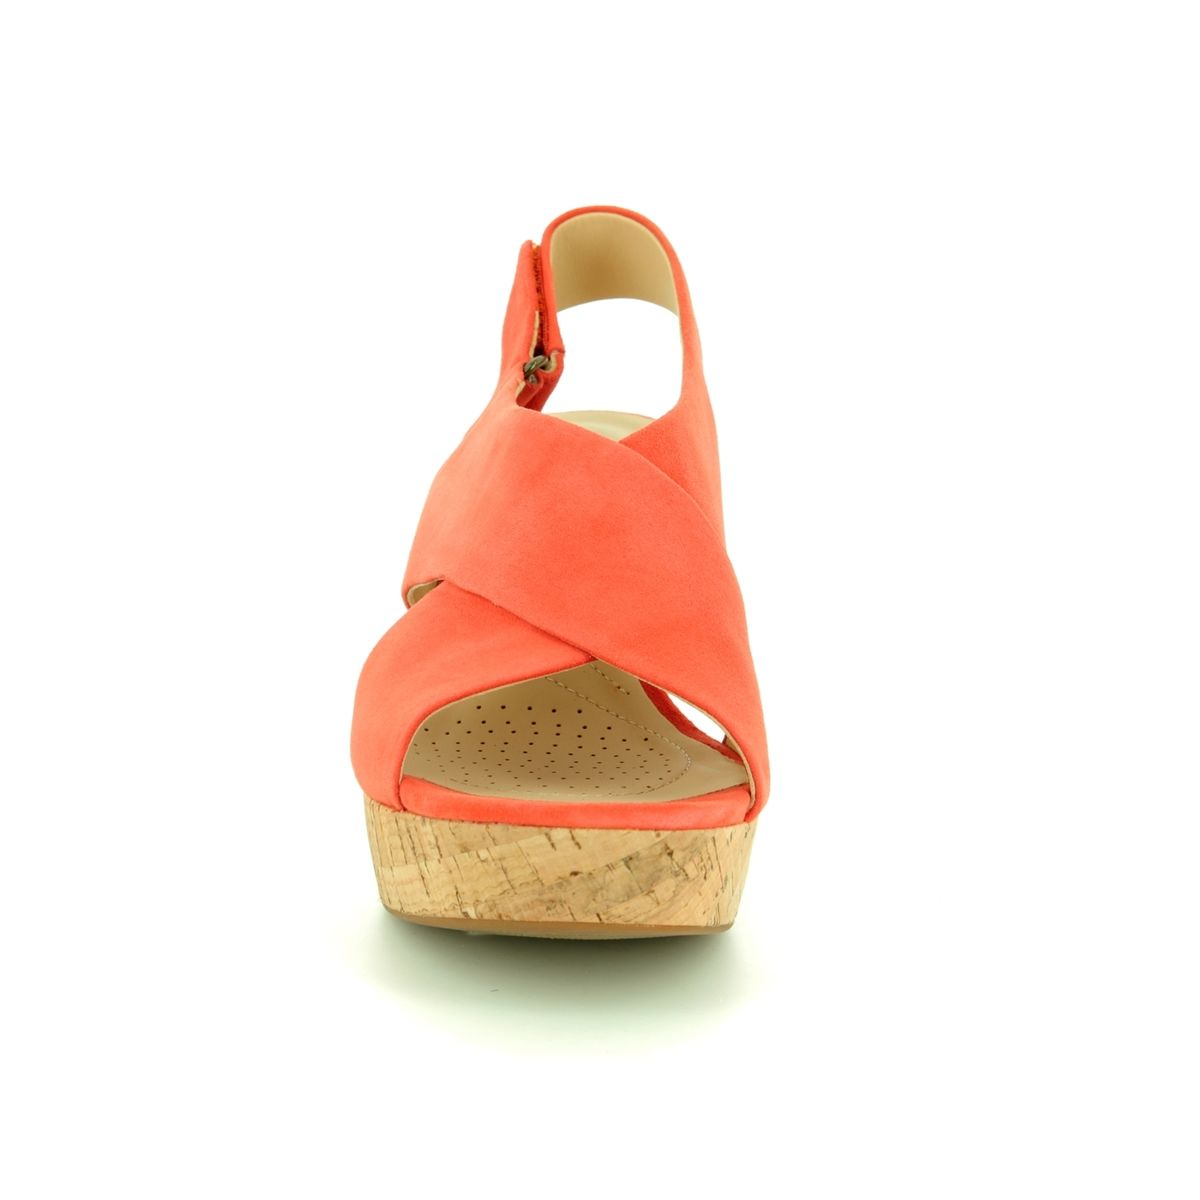 eca5506376efc9 Clarks Wedge Sandals - Orange - 421594D MARITSA LARA